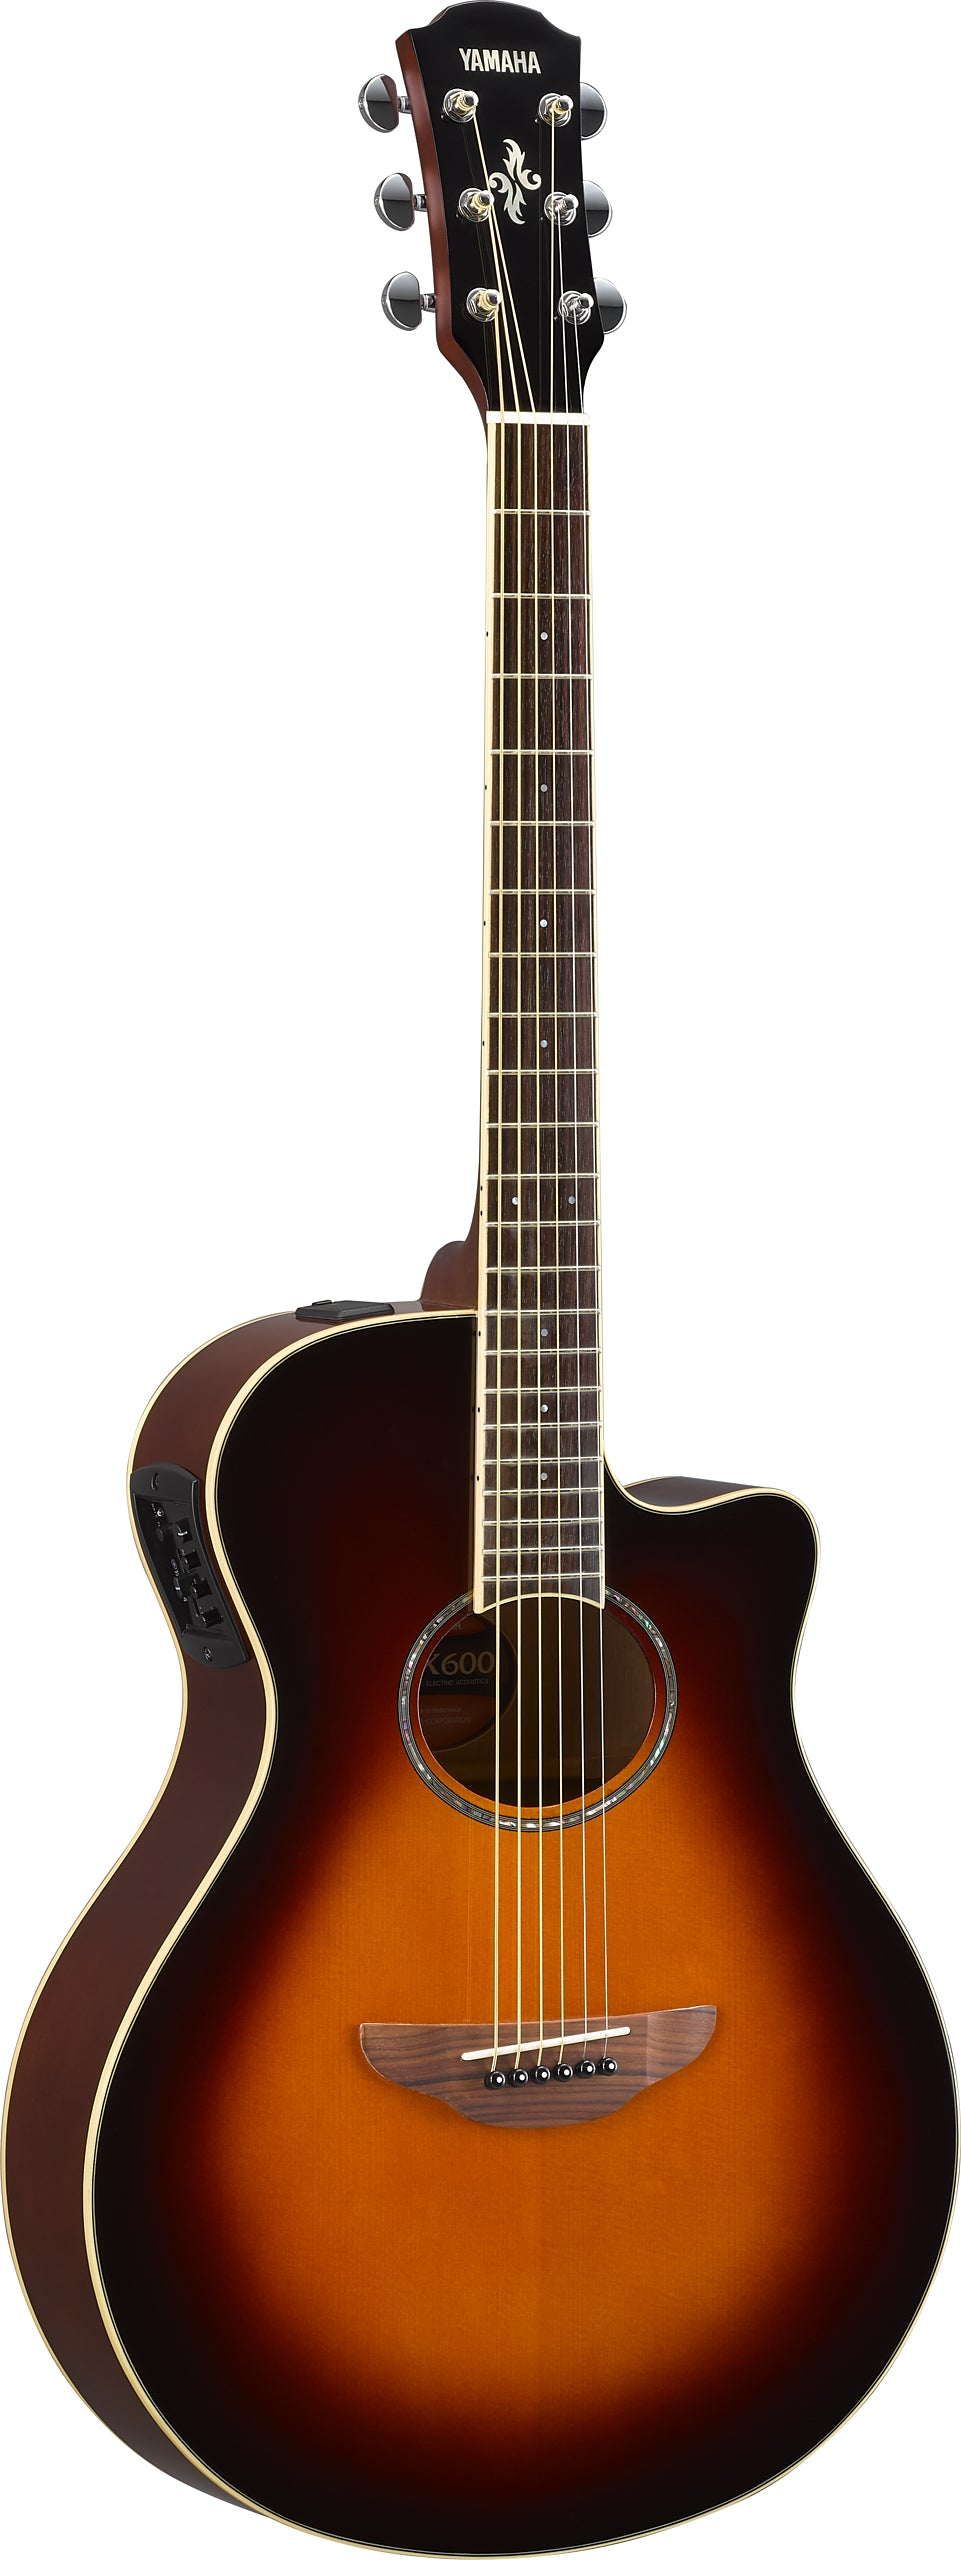 Yamaha APX600 Acoustic Guitar - Old Violin Sunburst